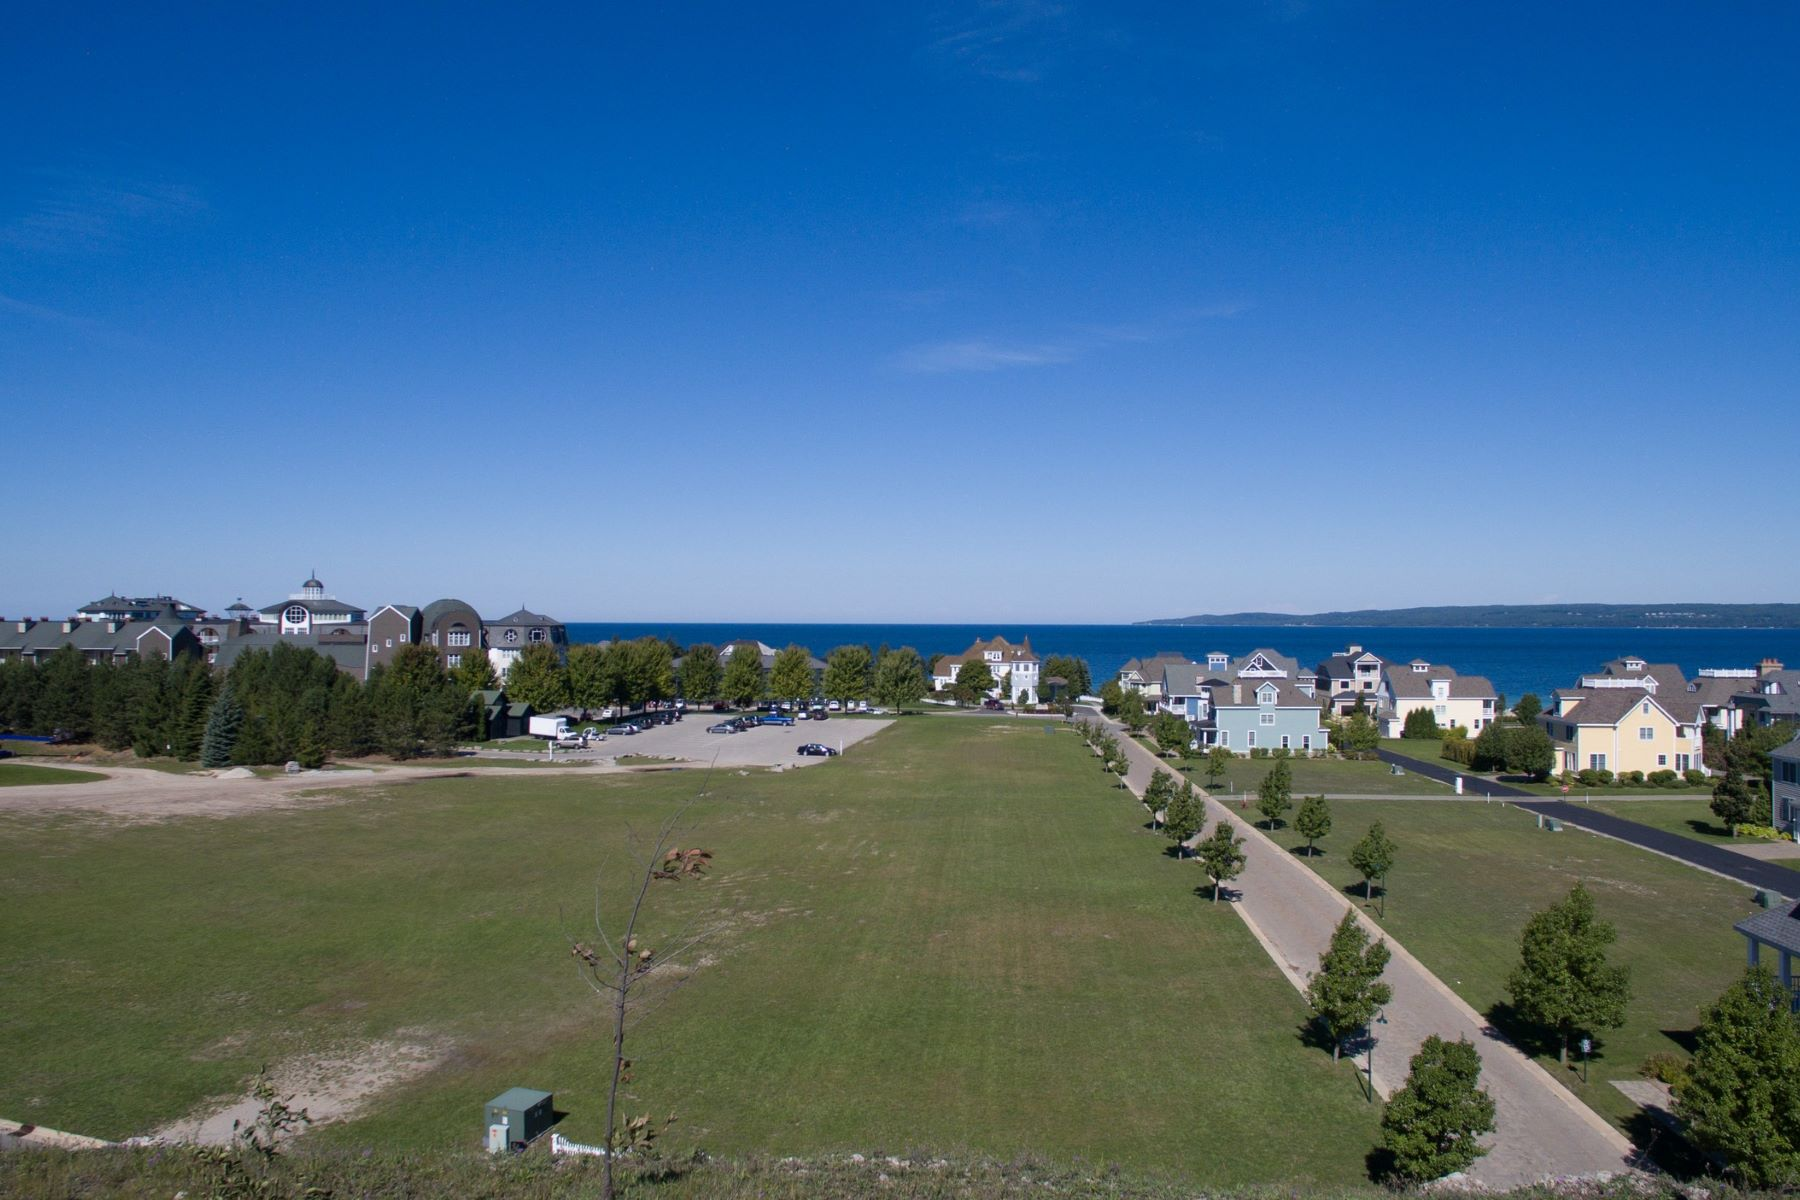 Land for Sale at Unit 8, The Ridge TBD Cliffs Drive, Unit 8, The Ridge Bay Harbor, Michigan 49770 United States